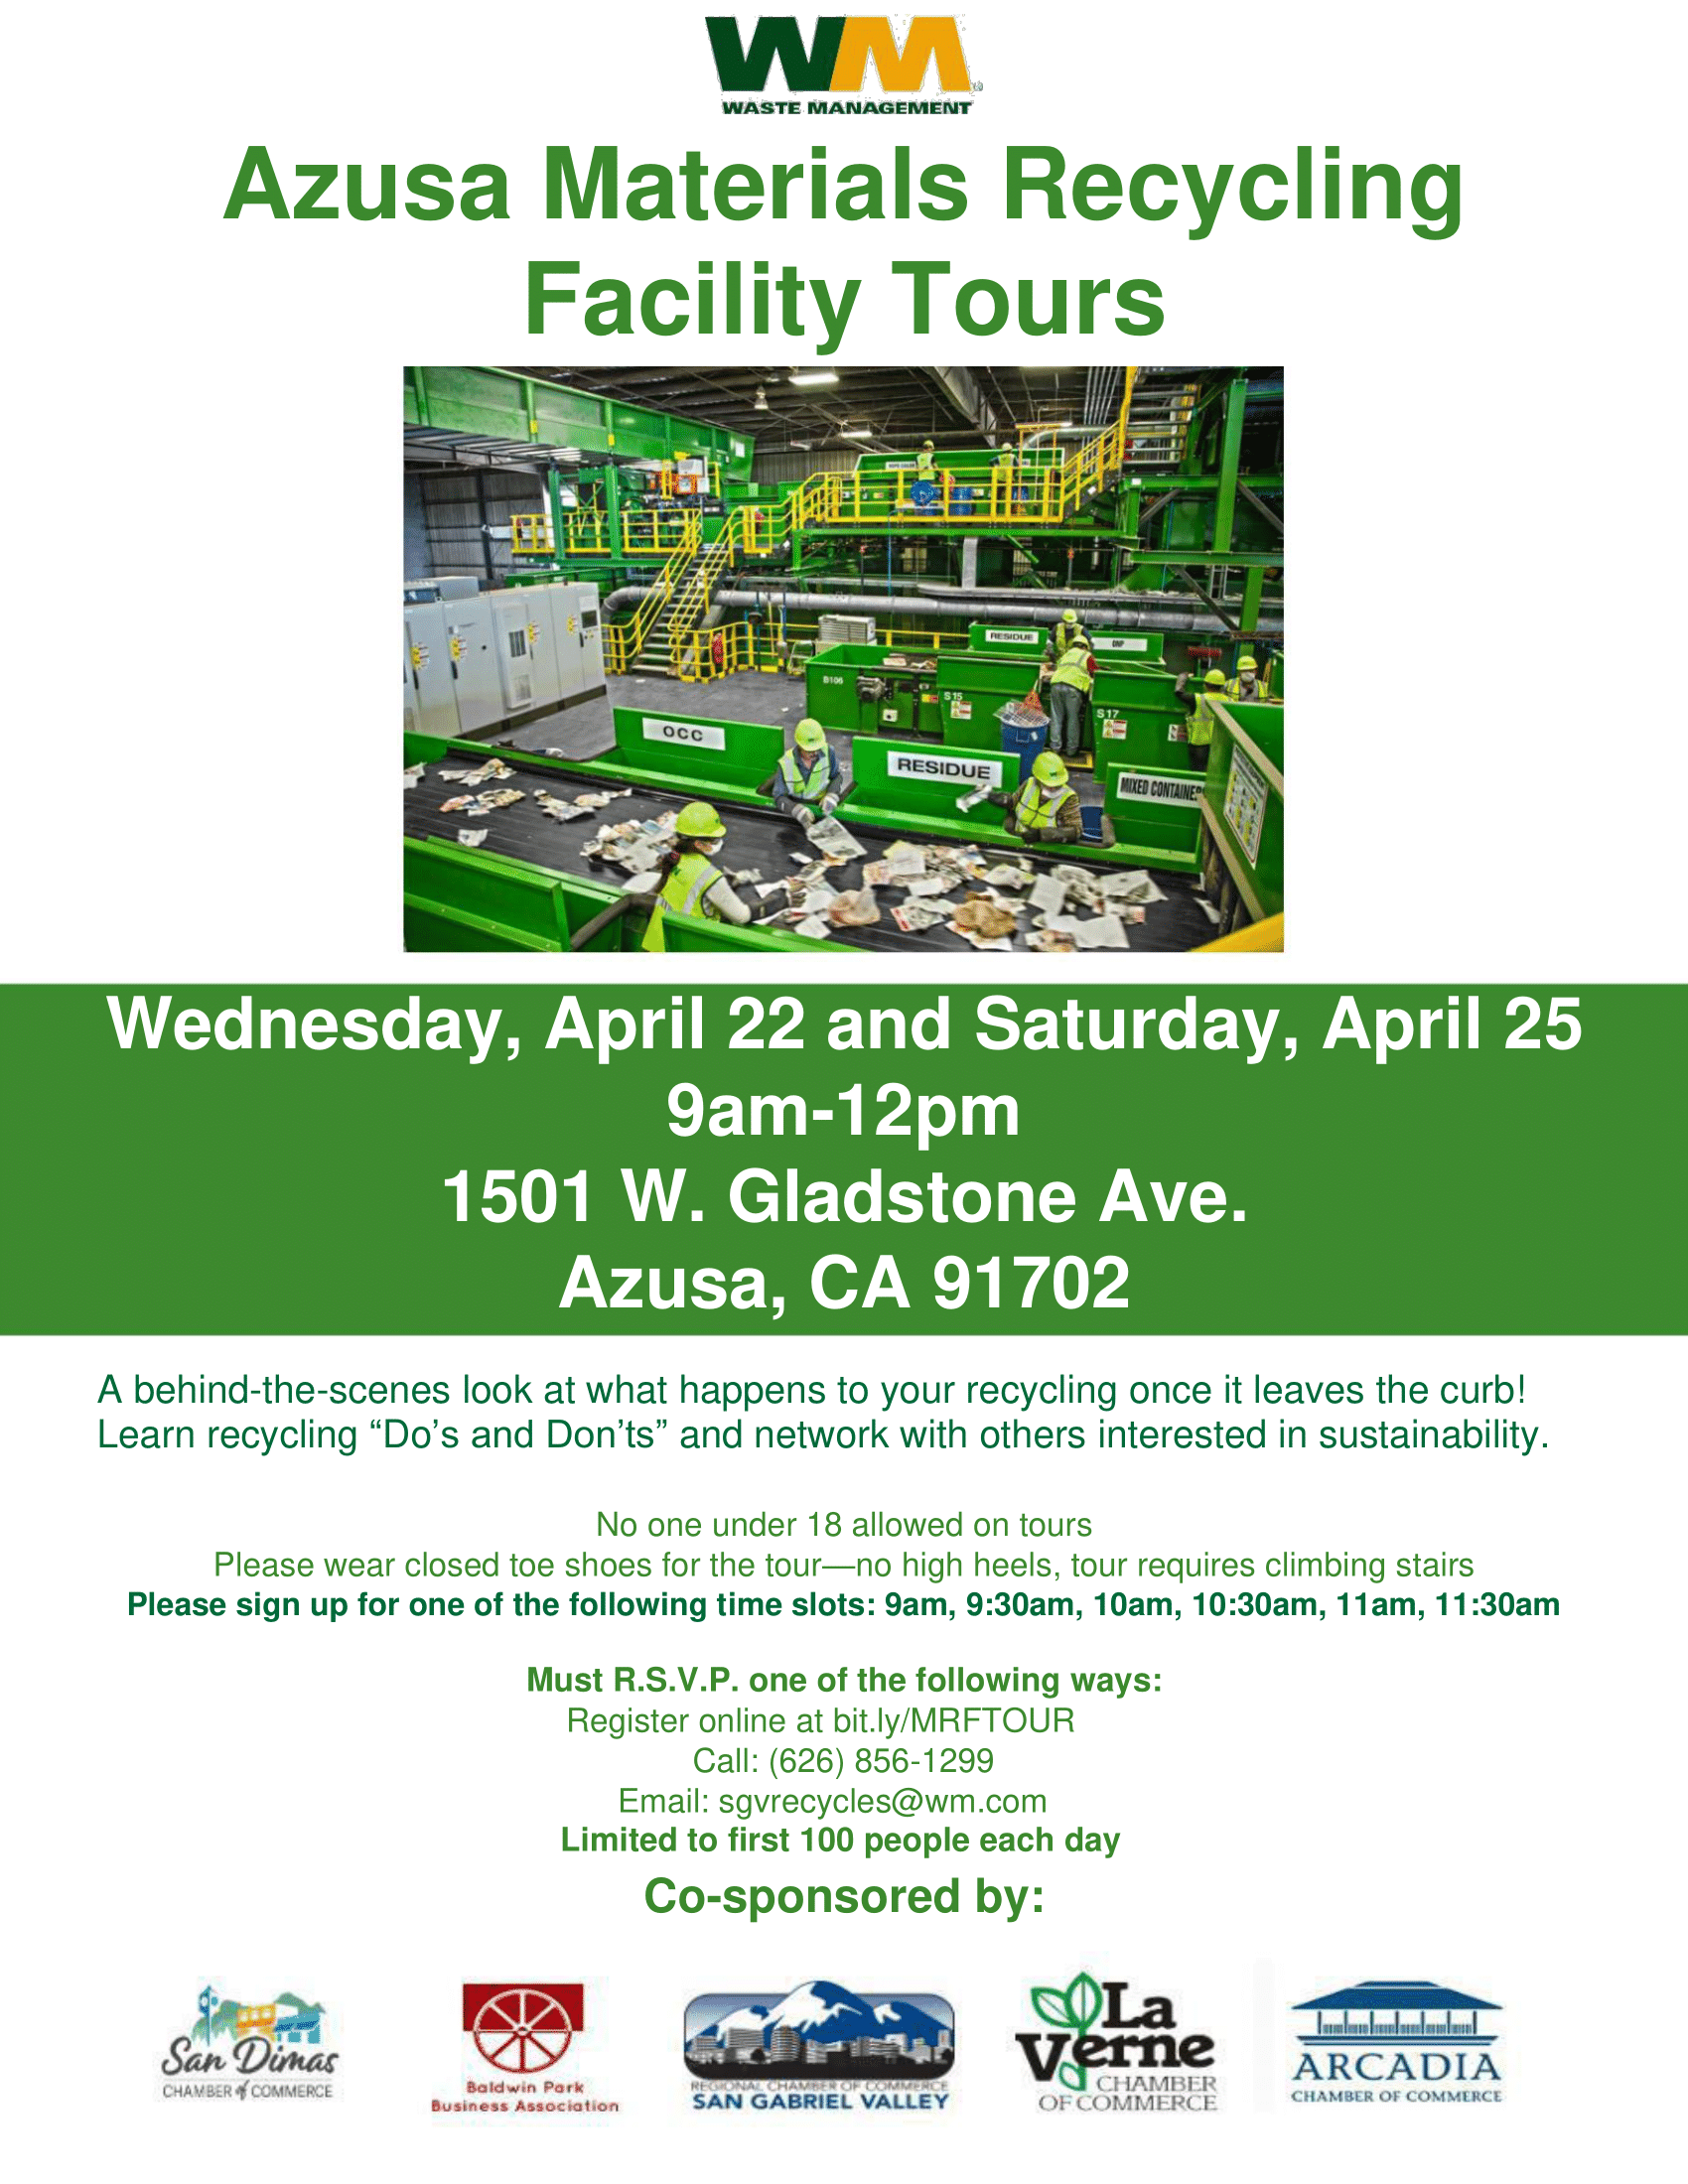 Waste Management Azusa MRF Tour Flyer